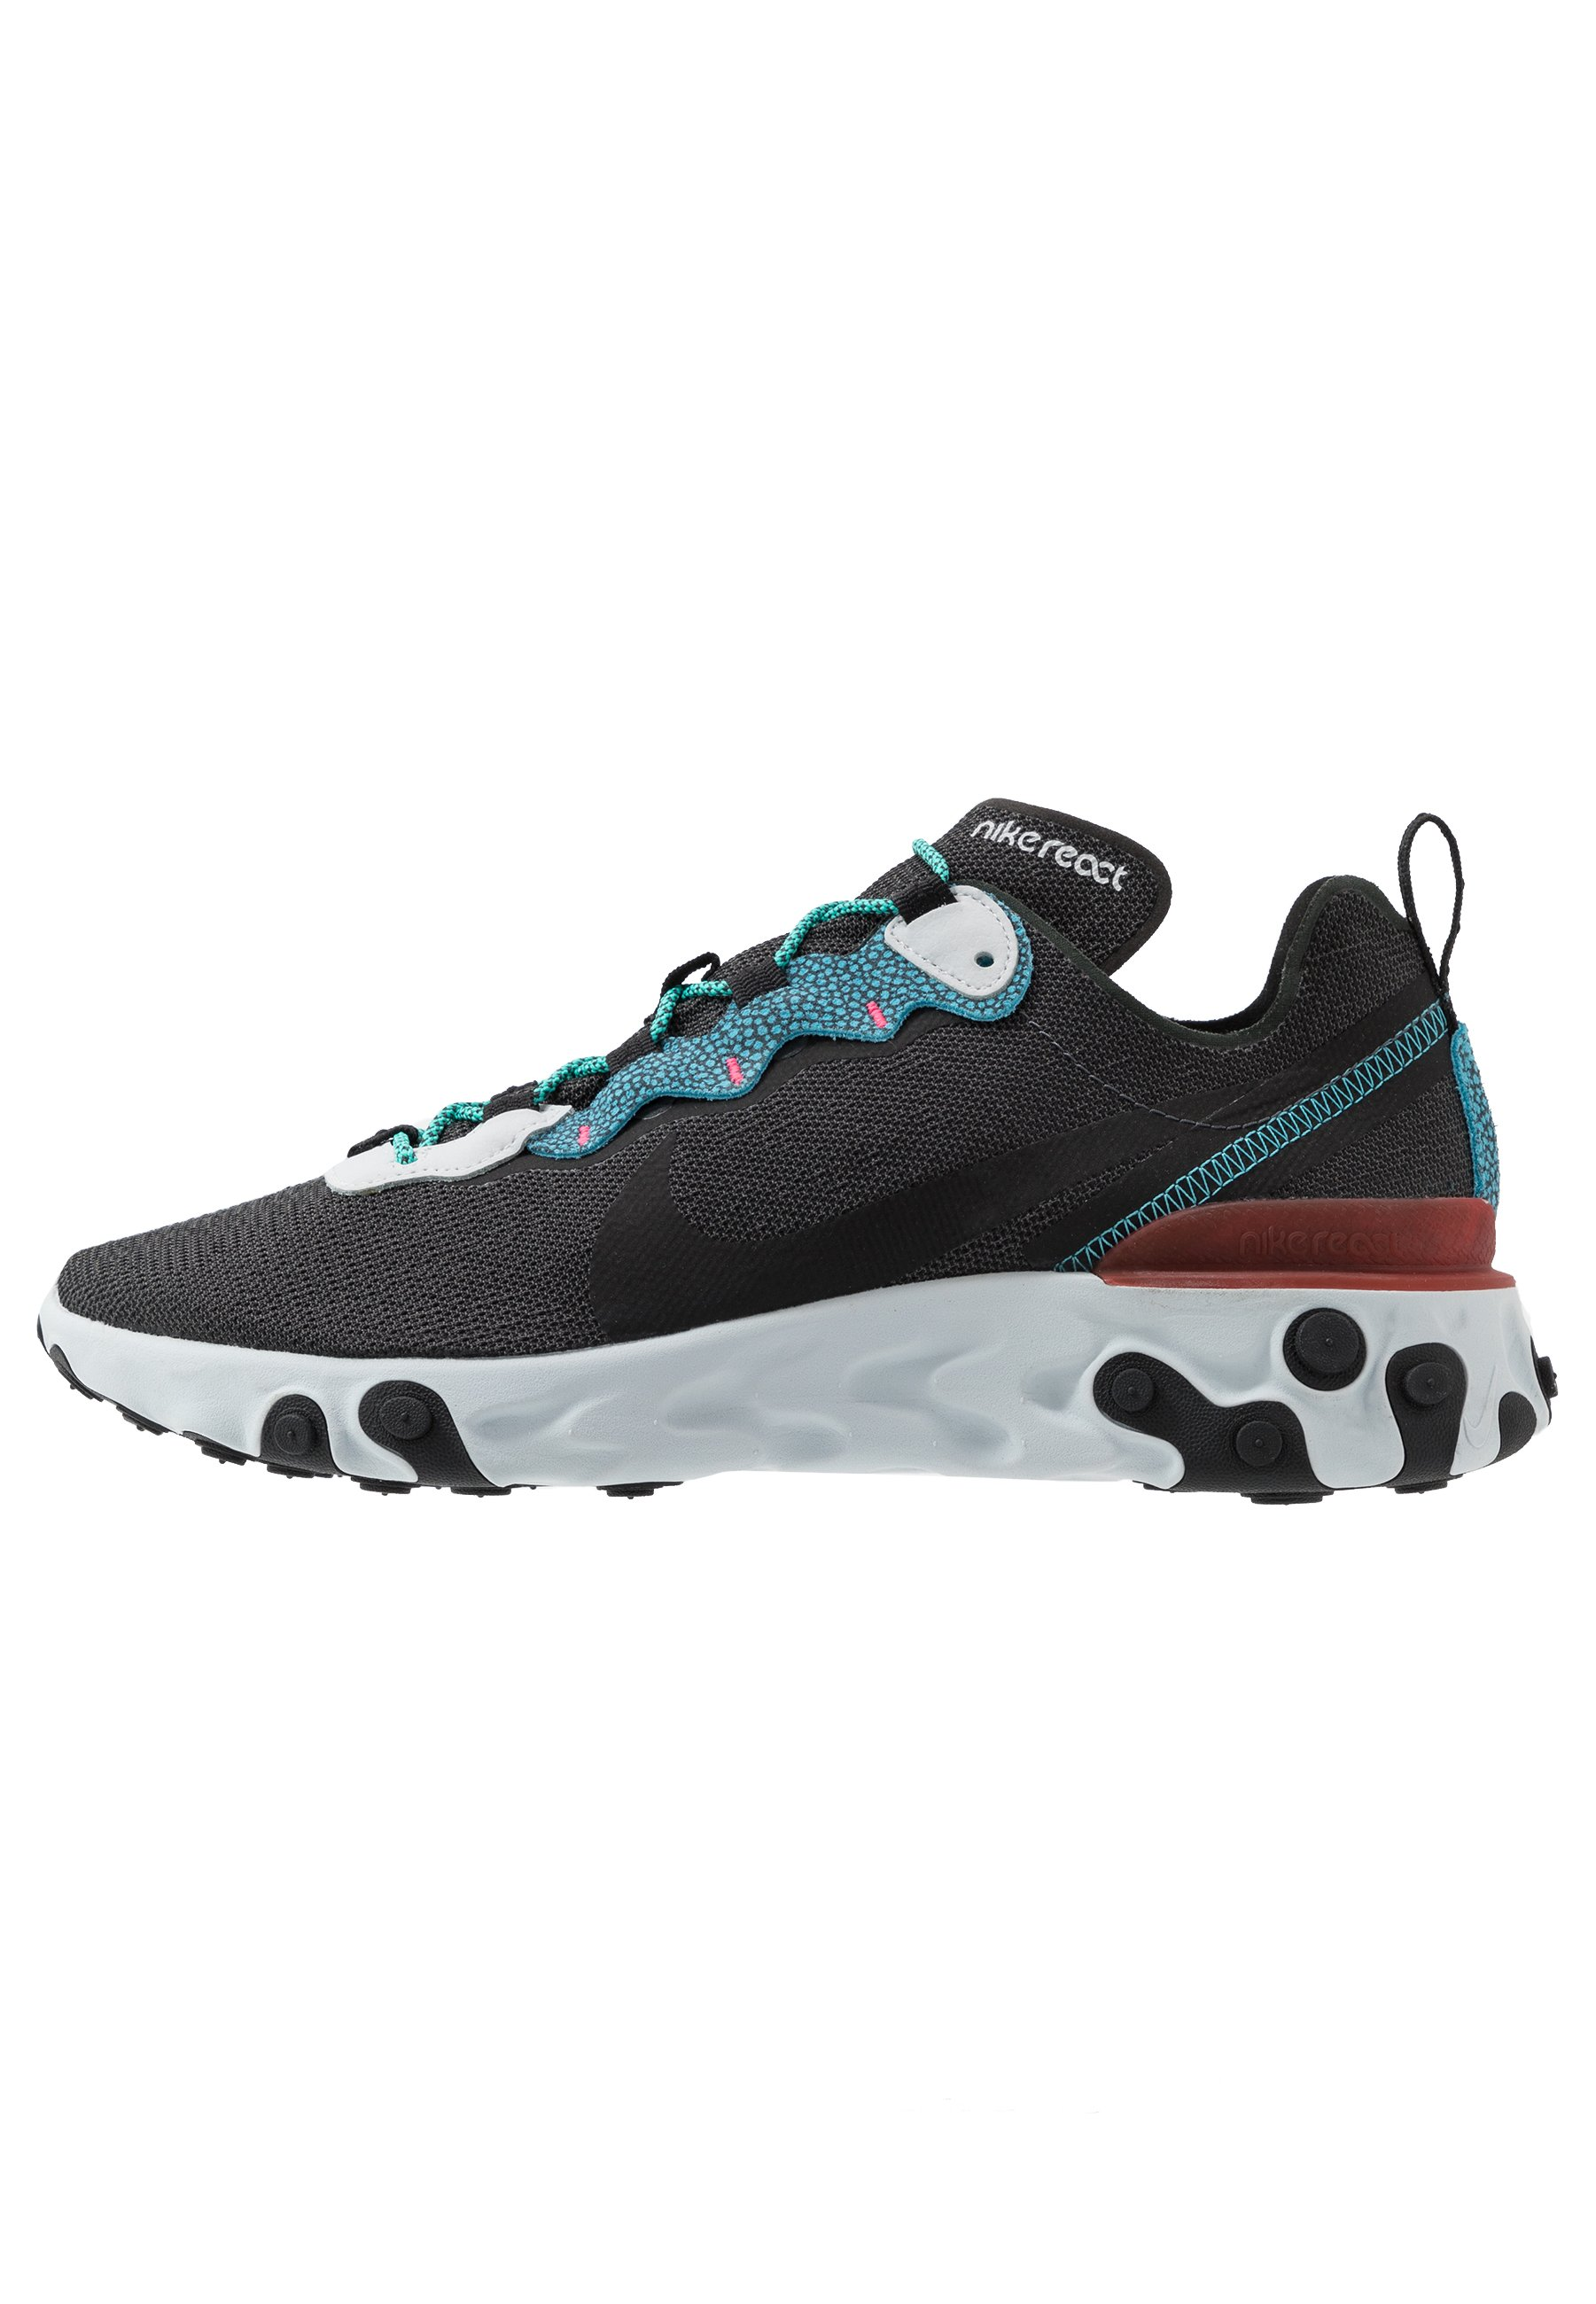 nike REACT ELEMENT 55 SE ANTHRACITEBLUE FURY PURE PLATINUM